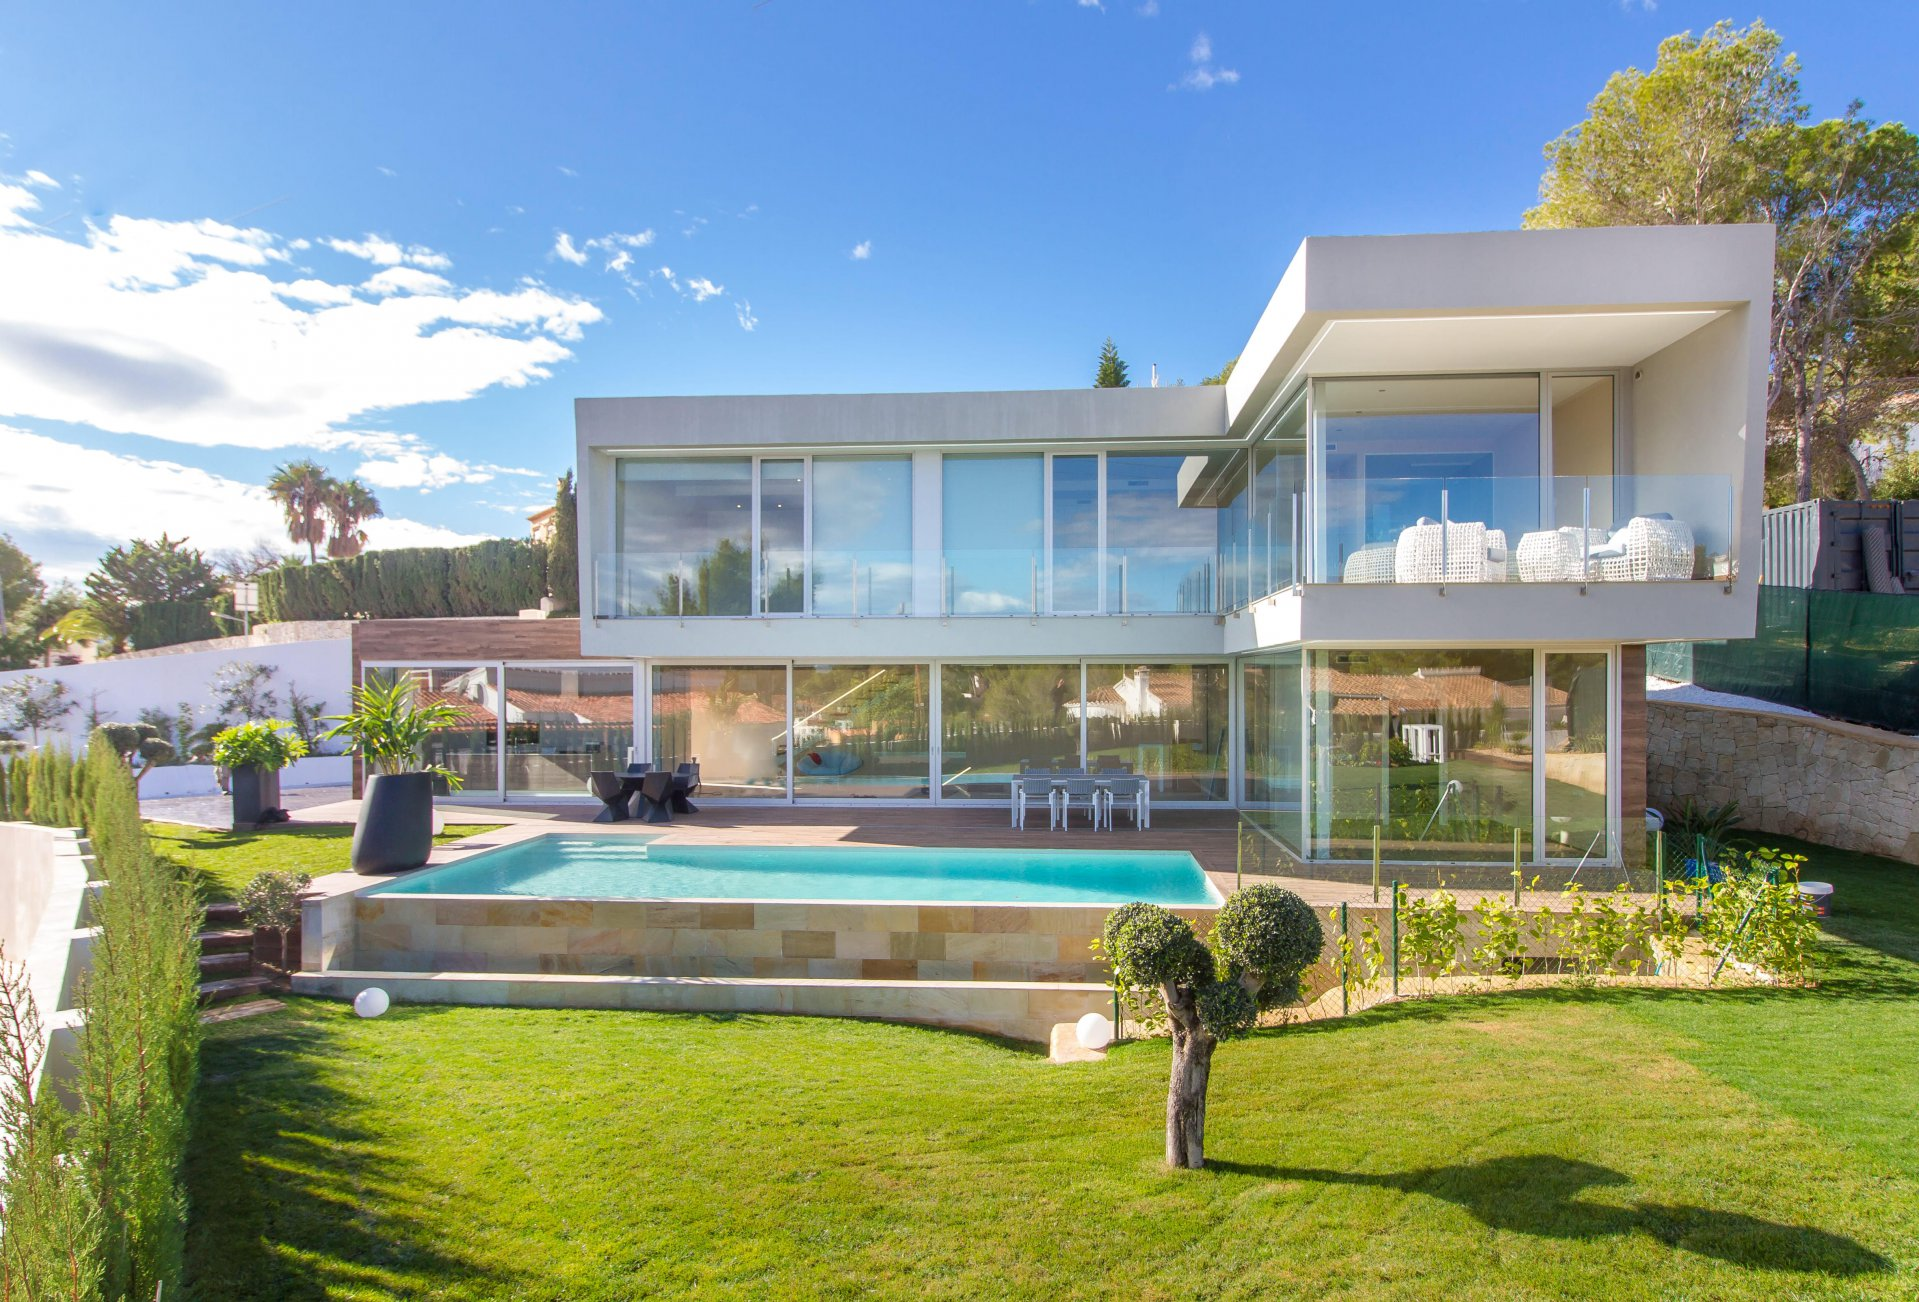 New build detached villa with modern design